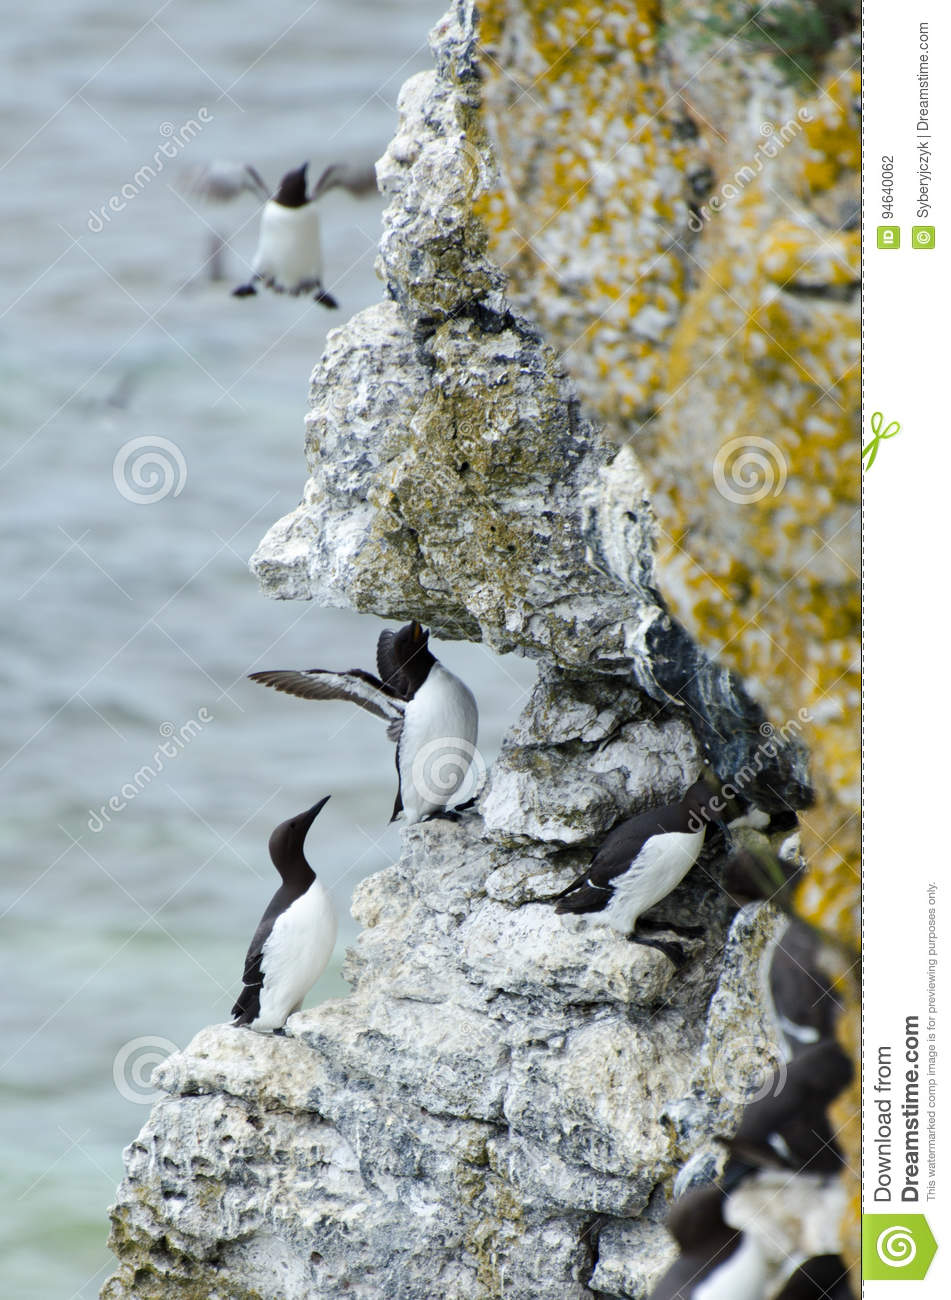 The razorbill Alca torda